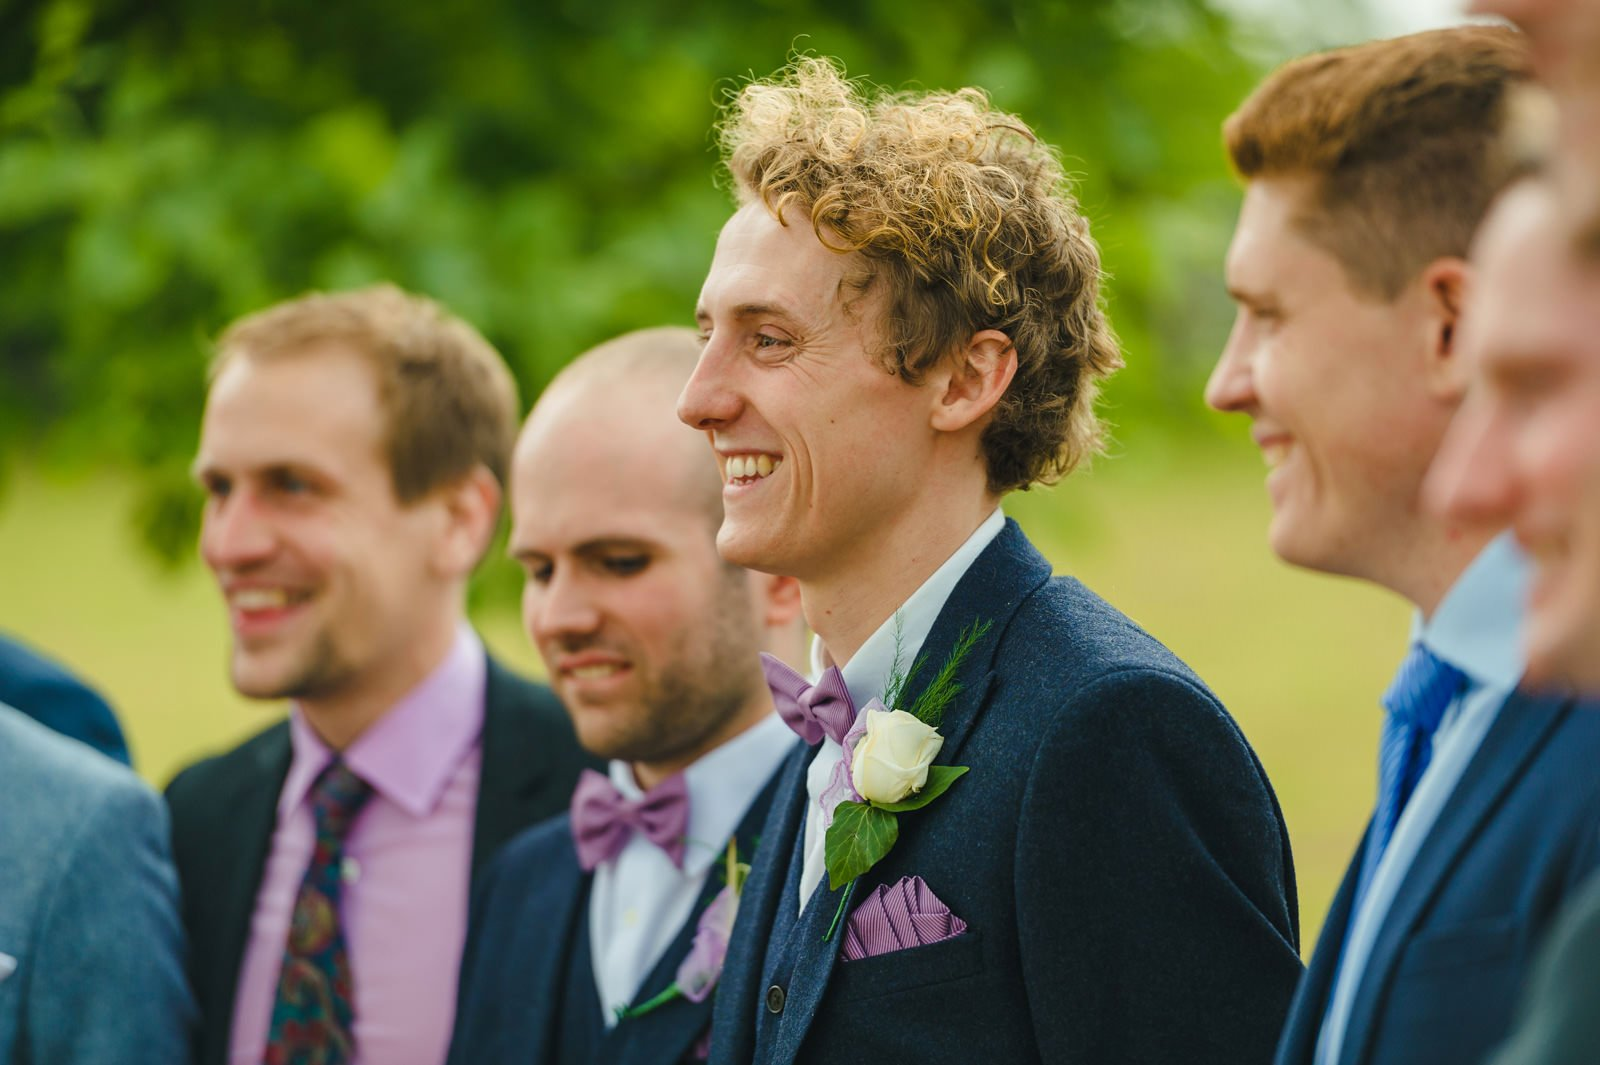 millers of netley wedding 64 - Millers Of Netley wedding, Dorrington, Shrewsbury | Emma + Ben